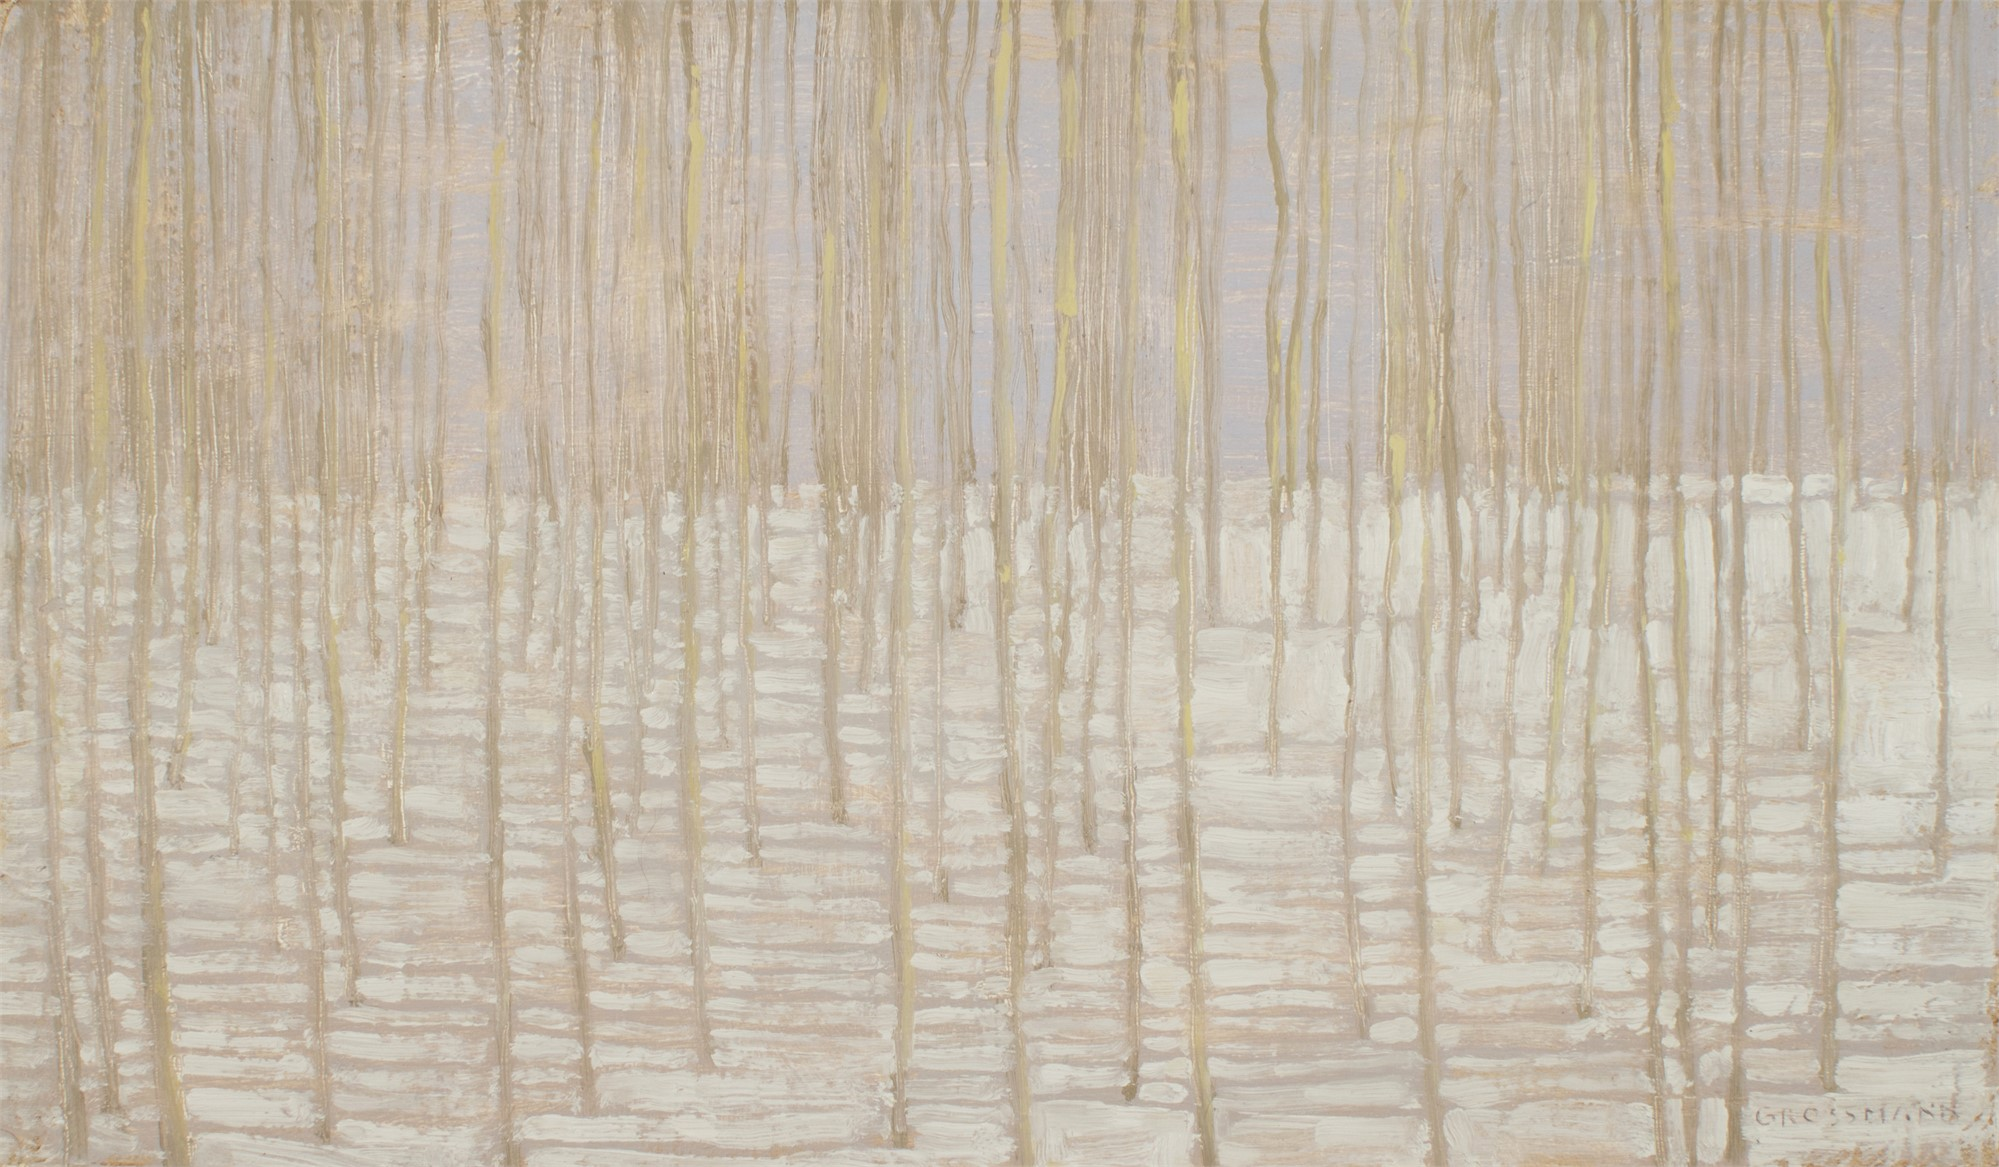 Winter Forest with Shadow Lines by David Grossmann